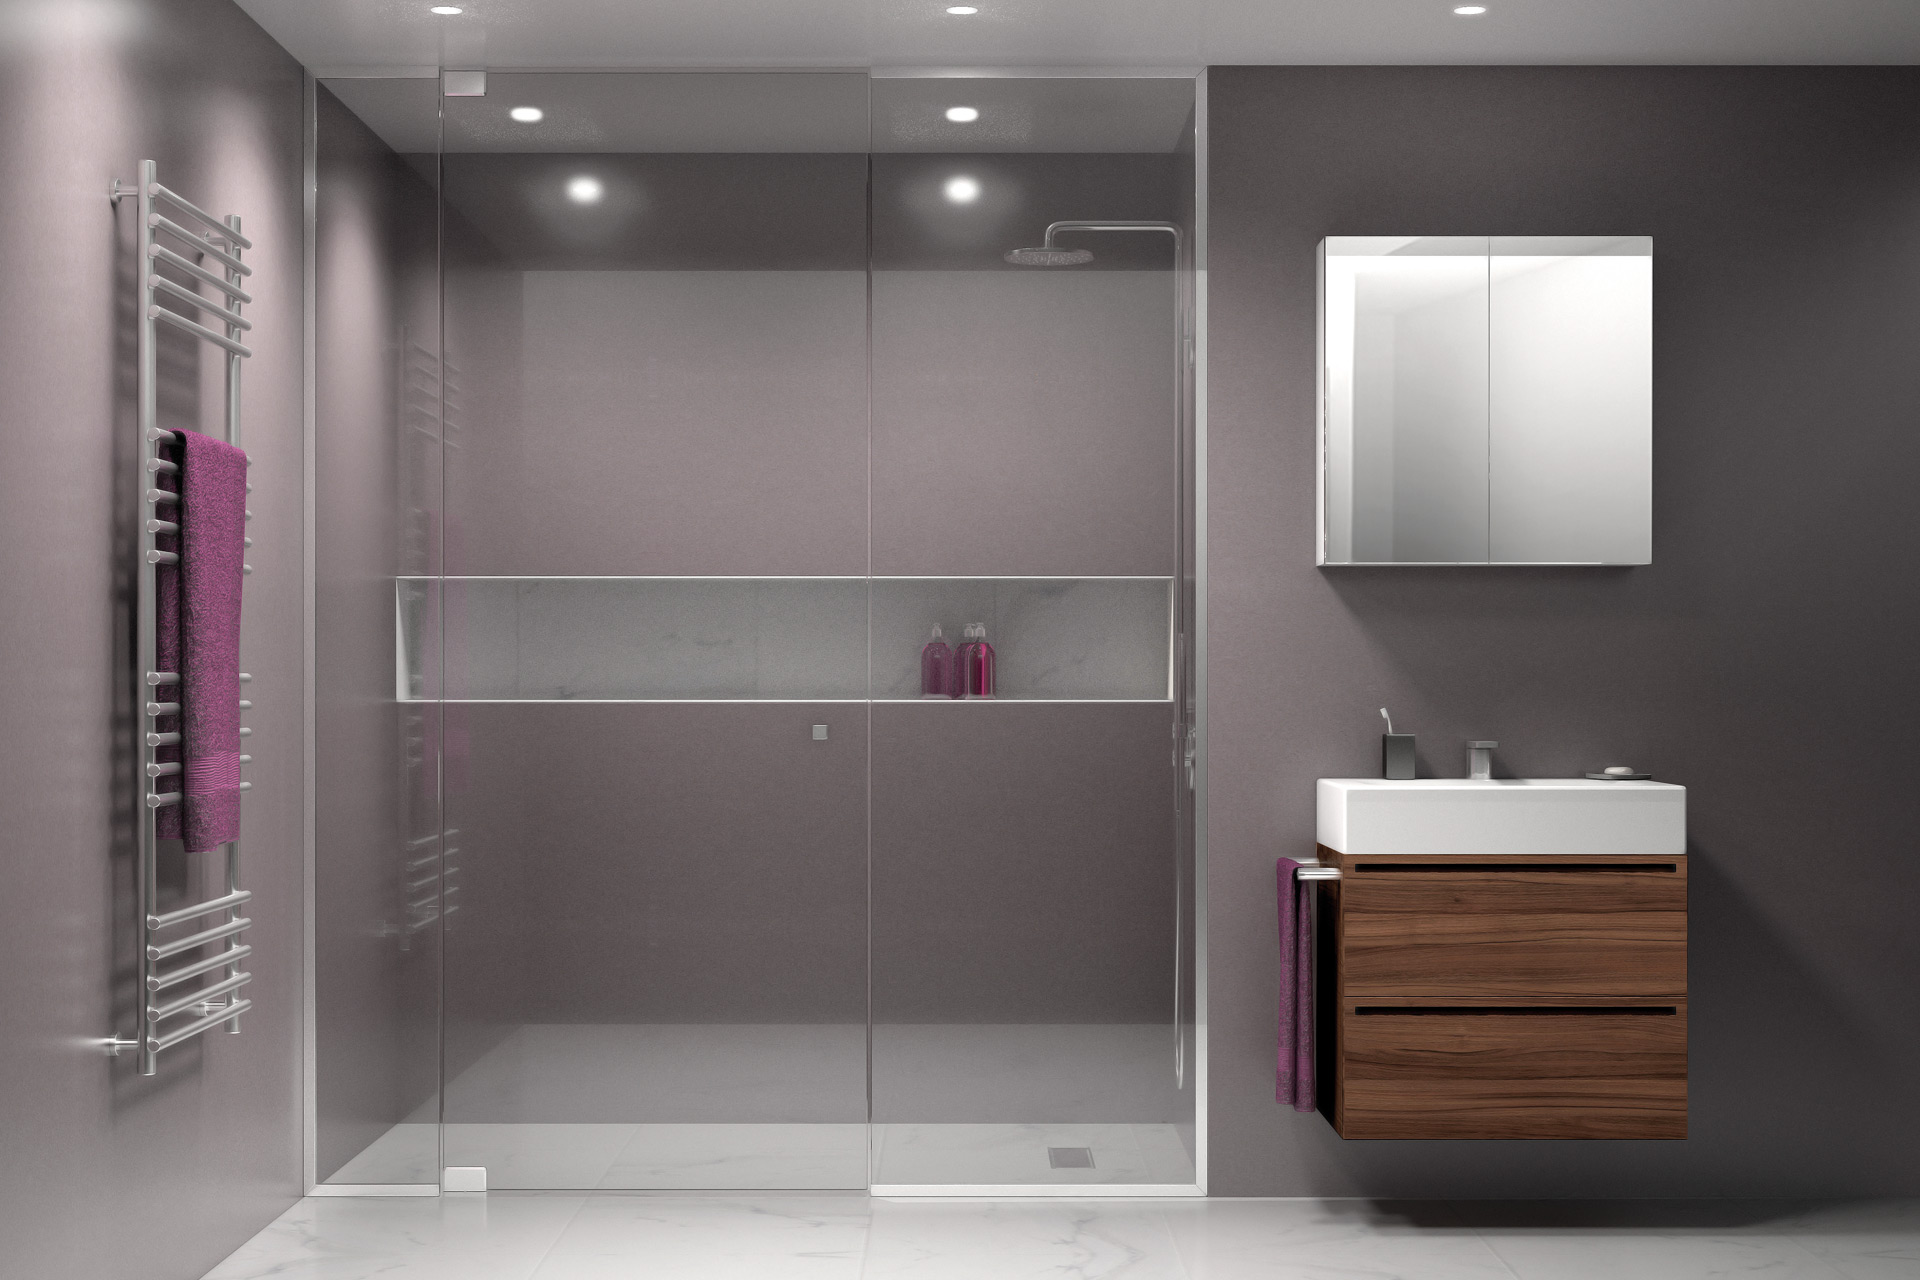 CRL Case Study - Bathroom Imagery | Jask Creative